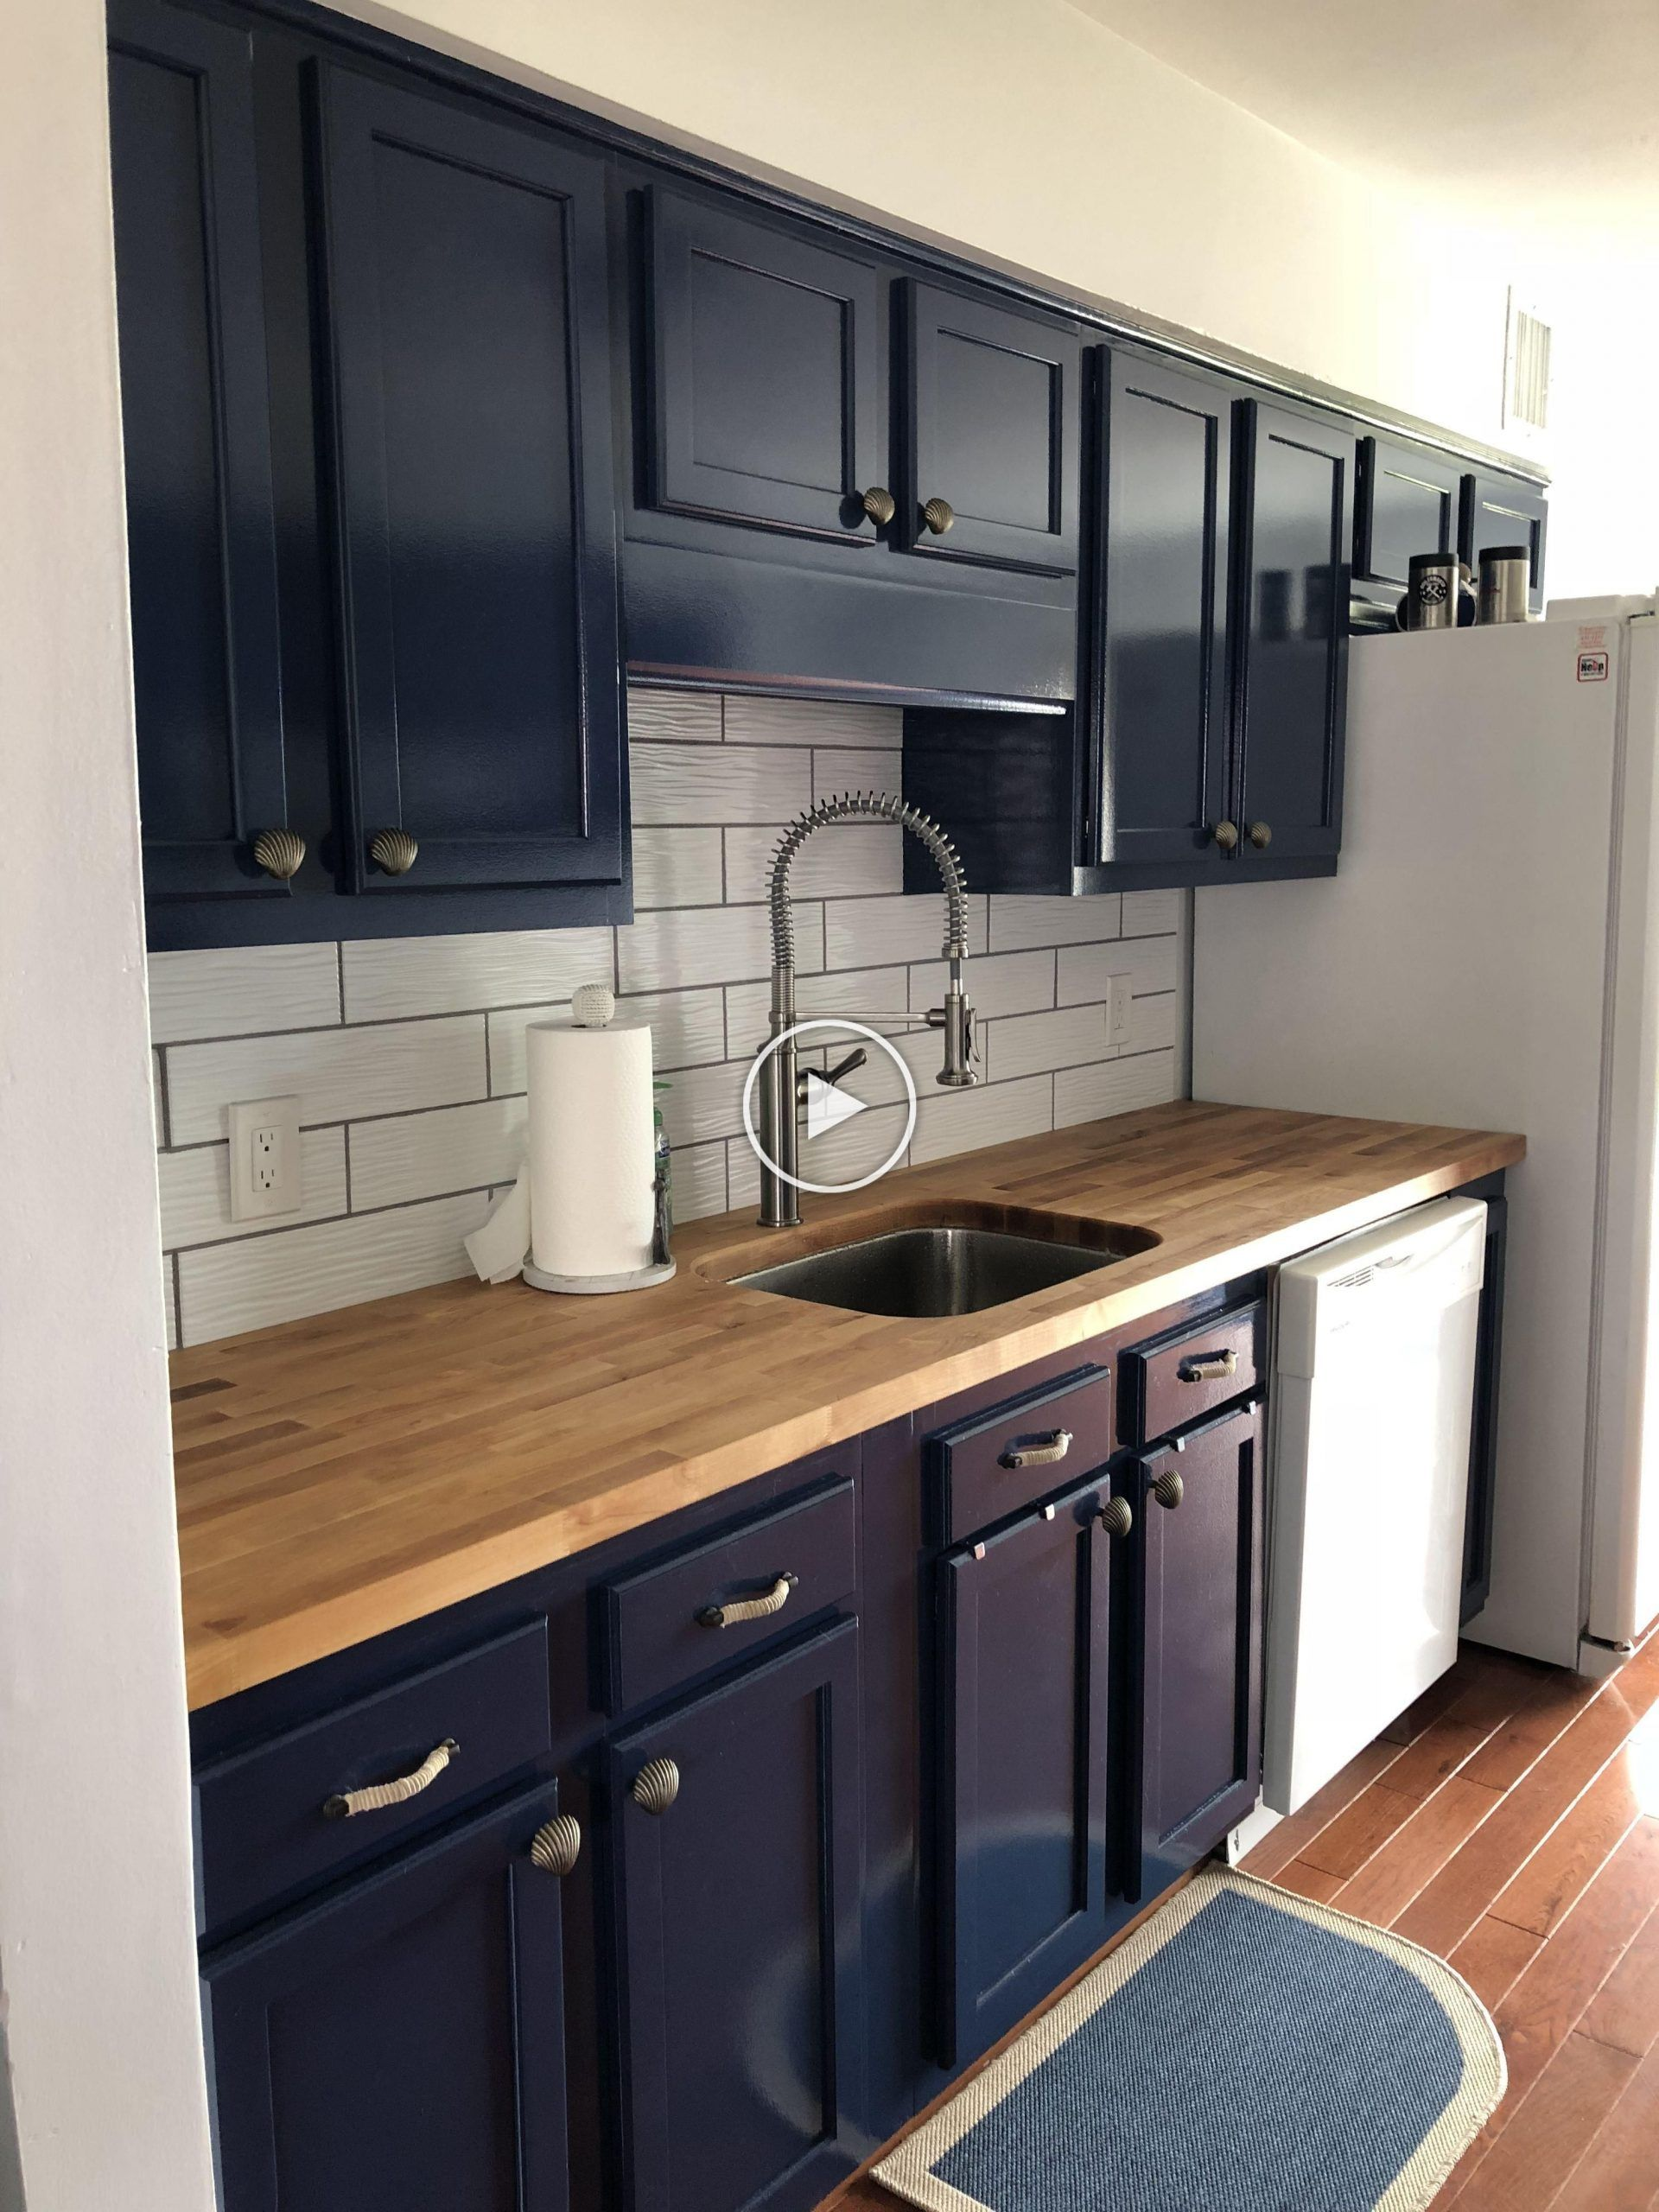 Backsplash Beautiful Perfectly Laminate Cabinets Backsplash Beautiful Cabinets Laminate In 2020 Nautical Kitchen Navy Blue Kitchen Navy Blue Kitchen Cabinets